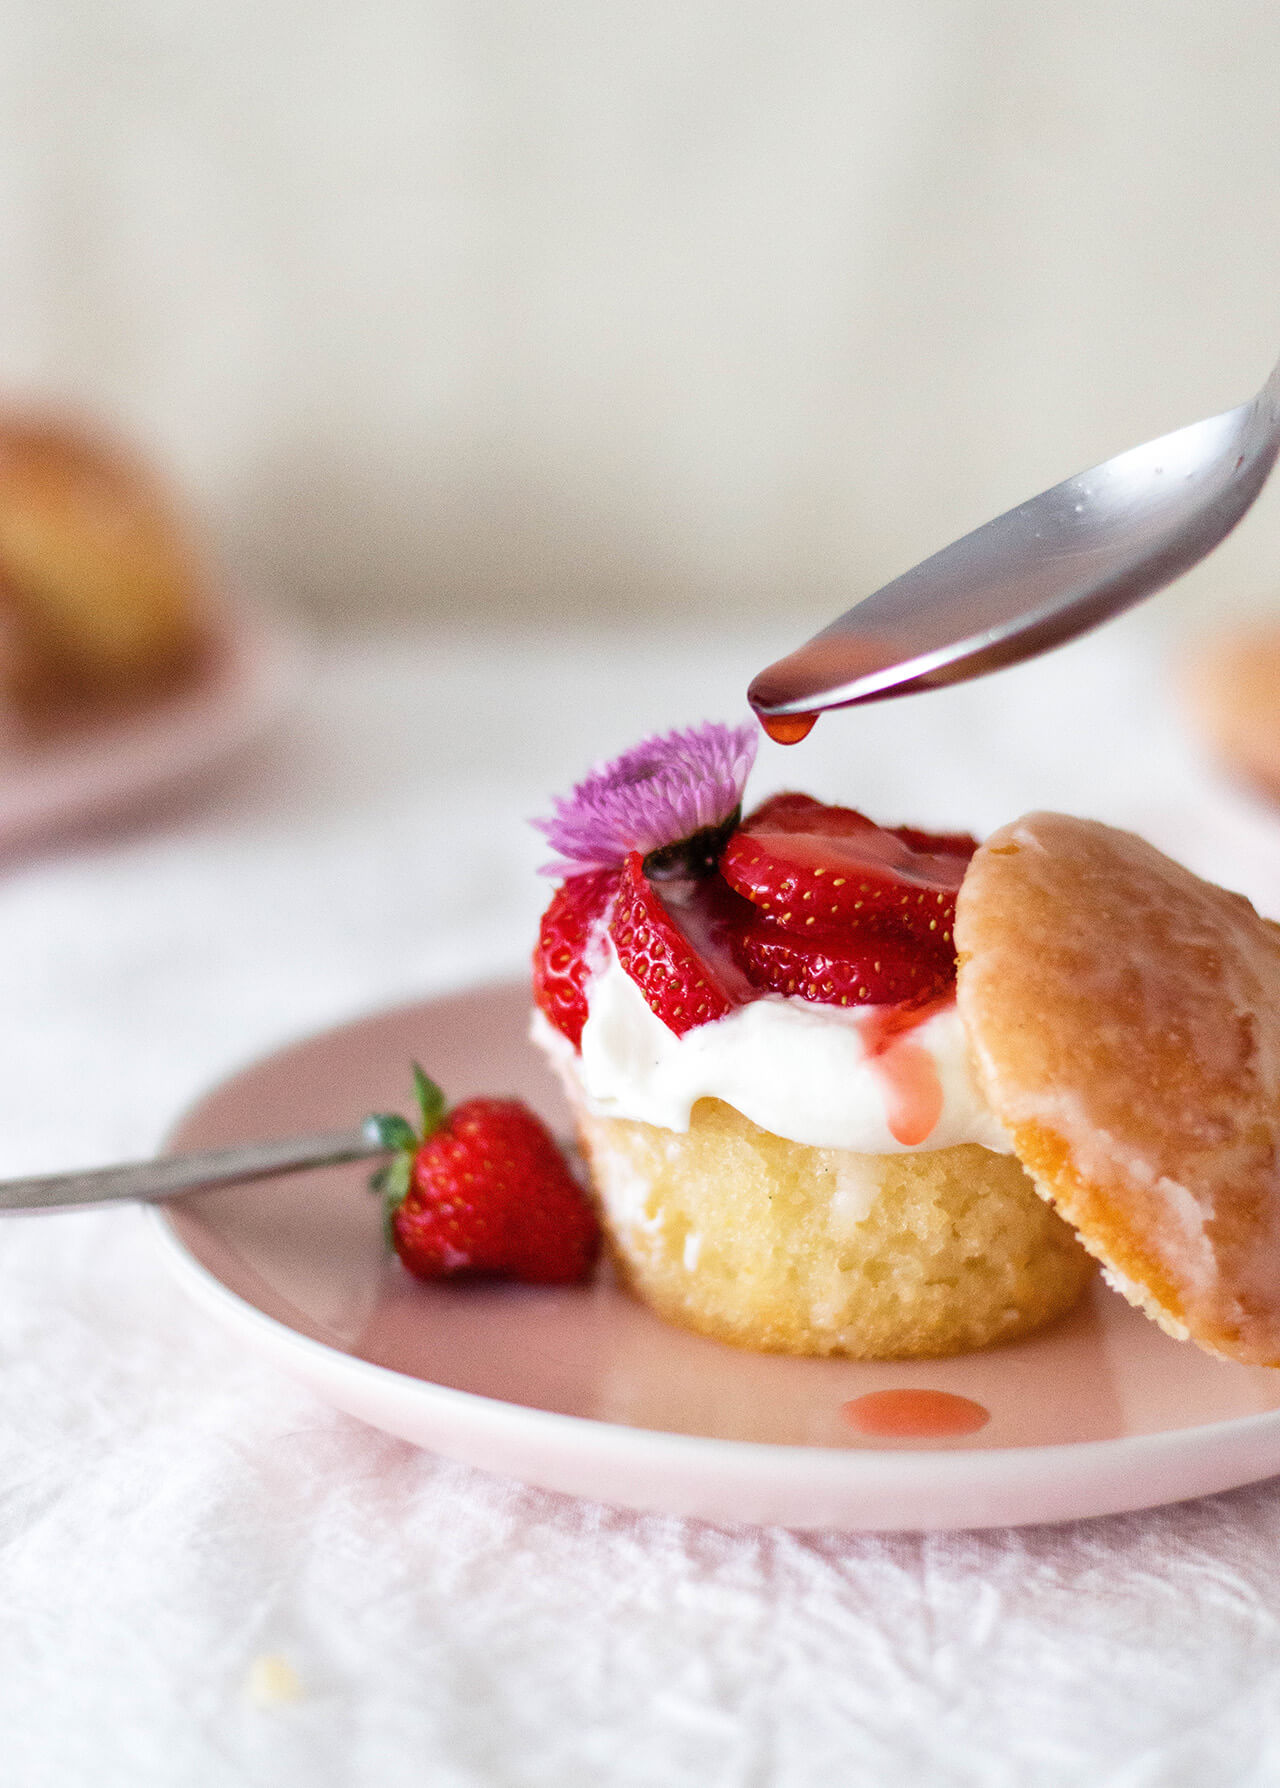 Whipped ricotta lemon muffin cakes with strawberries are a simple but impressive dessert. Easily made ahead, great for a crowd.